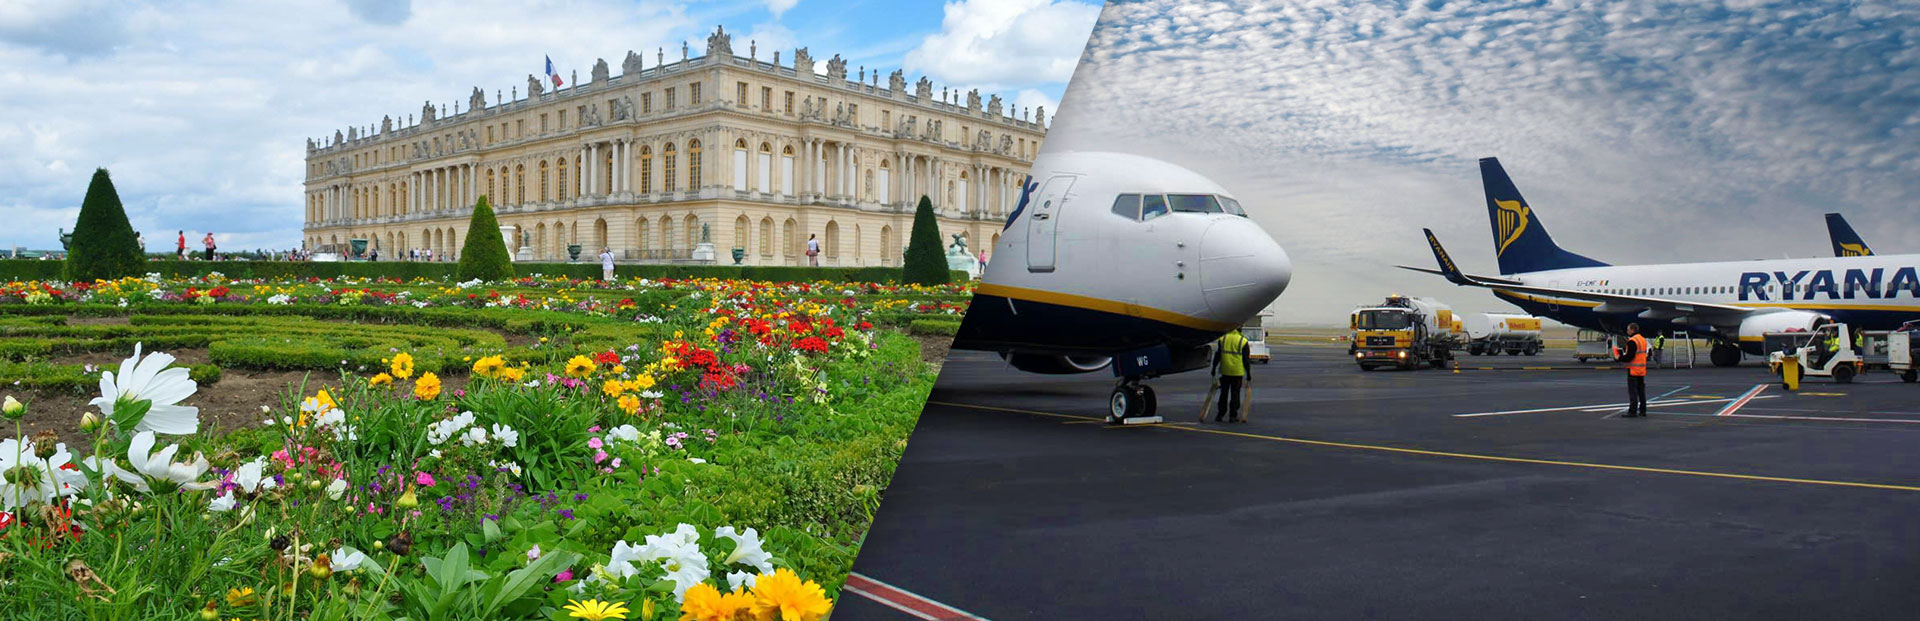 From Chateau De Versailles Airports